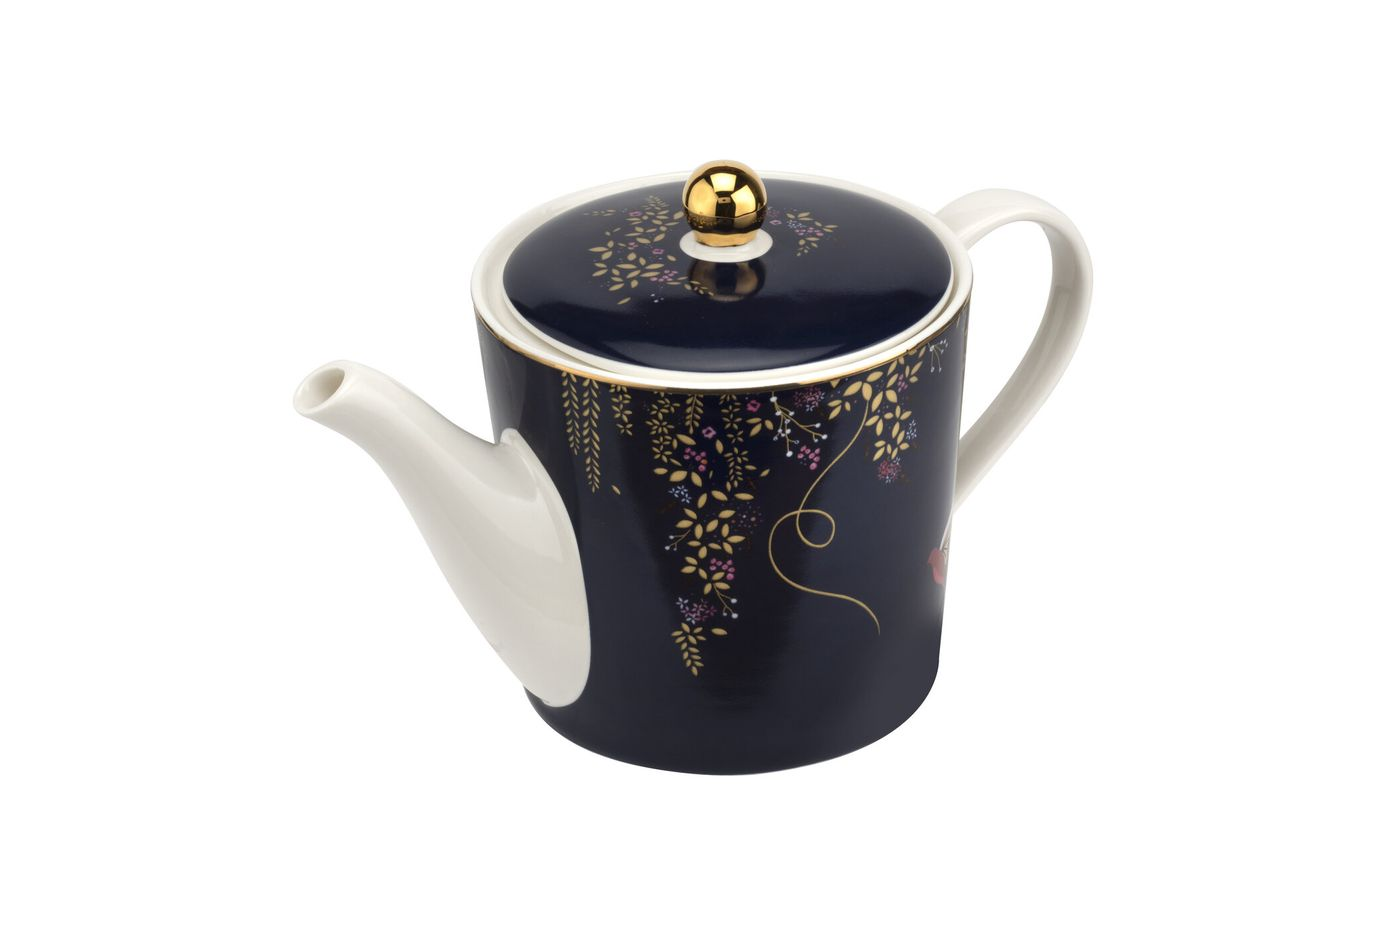 Sara Miller London for Portmeirion Chelsea Collection Teapot 0.5l thumb 3